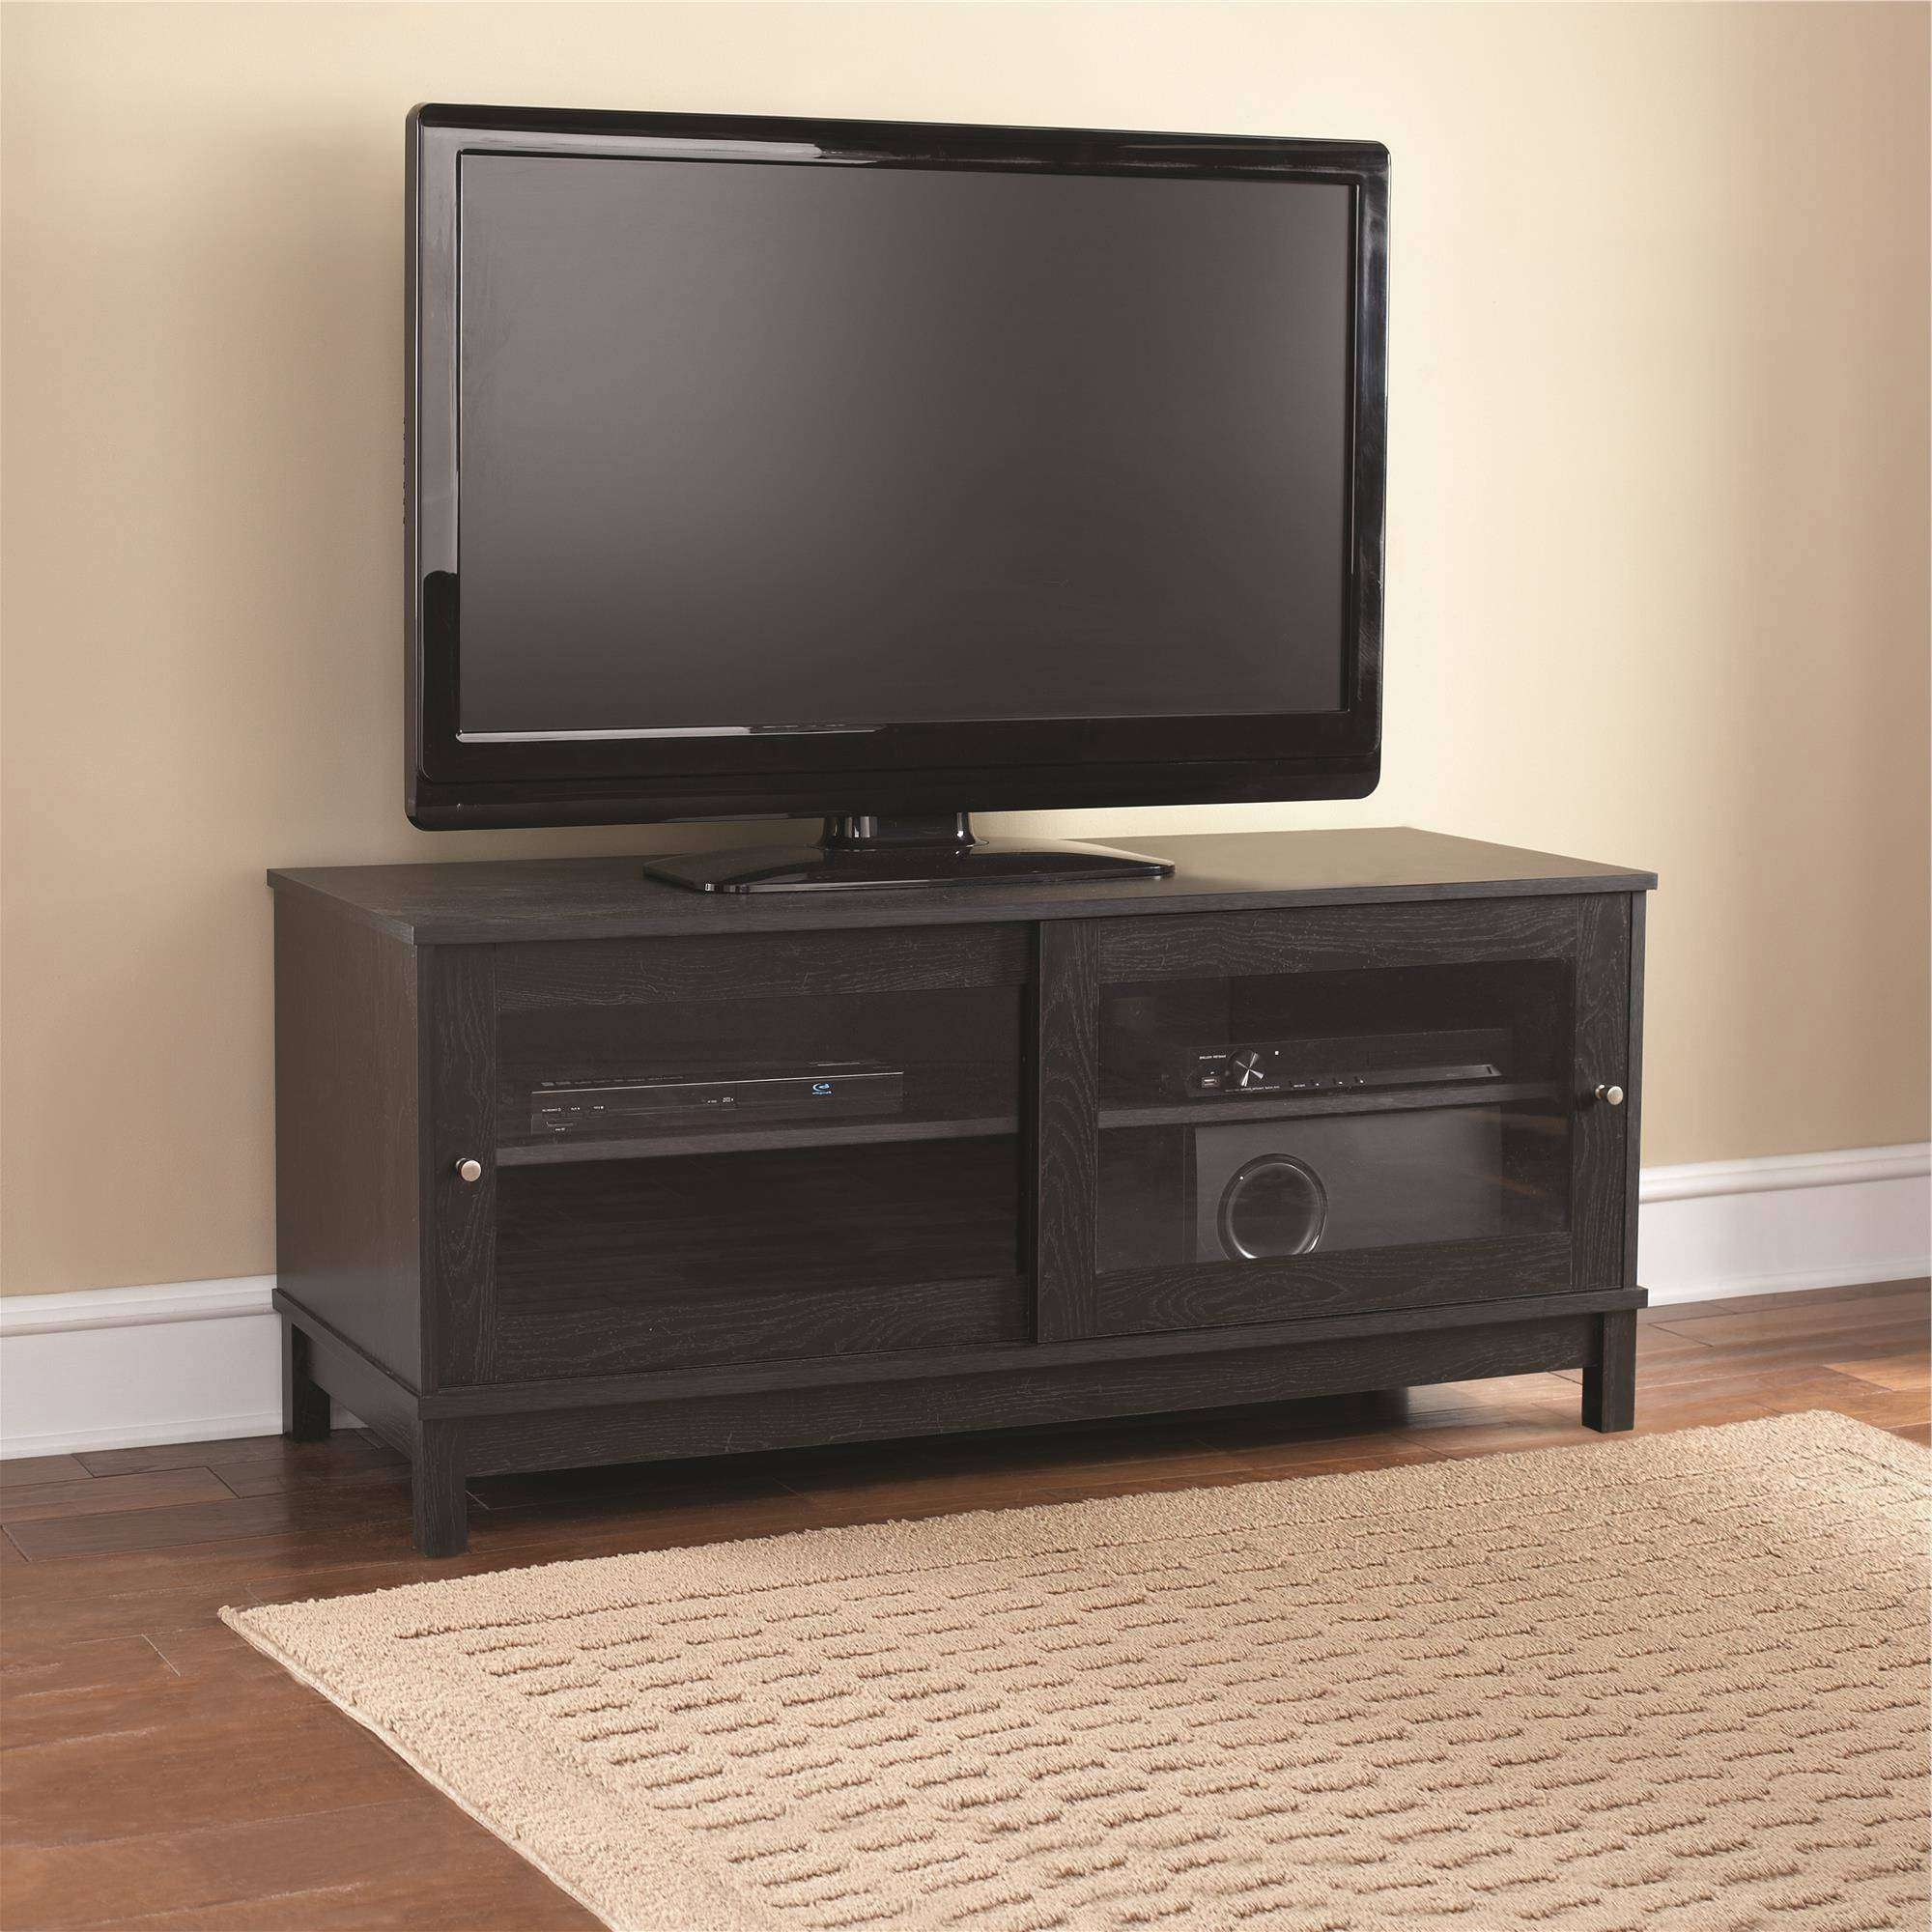 "Mainstays Entertainment Center Bundle For Tvs Up To 55"", Multiple Intended For Oak Tv Stands With Glass Doors (View 7 of 15)"